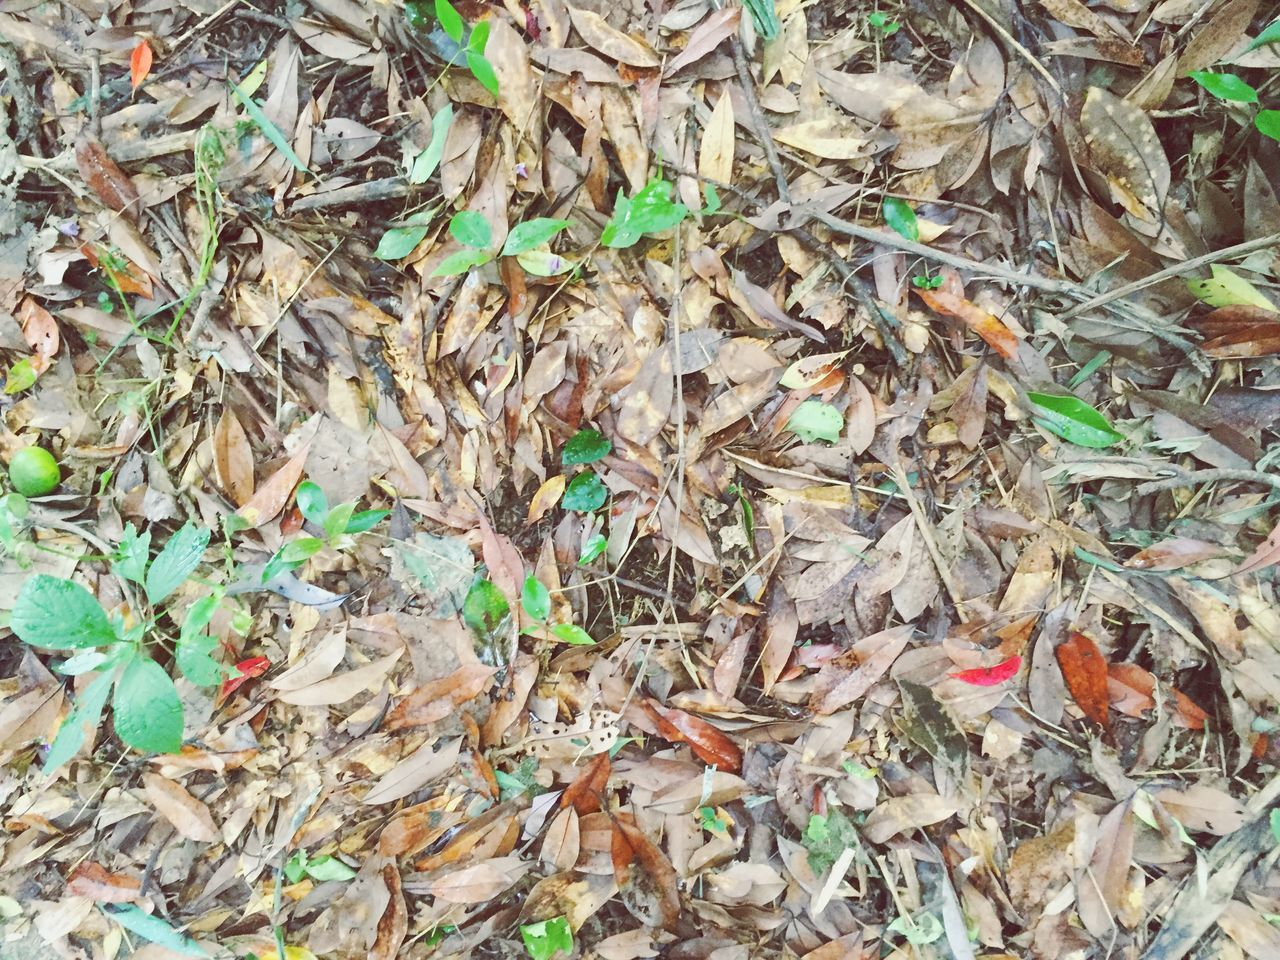 leaf, garbage, dry, full frame, high angle view, large group of objects, abundance, day, no people, field, outdoors, nature, change, close-up, backgrounds